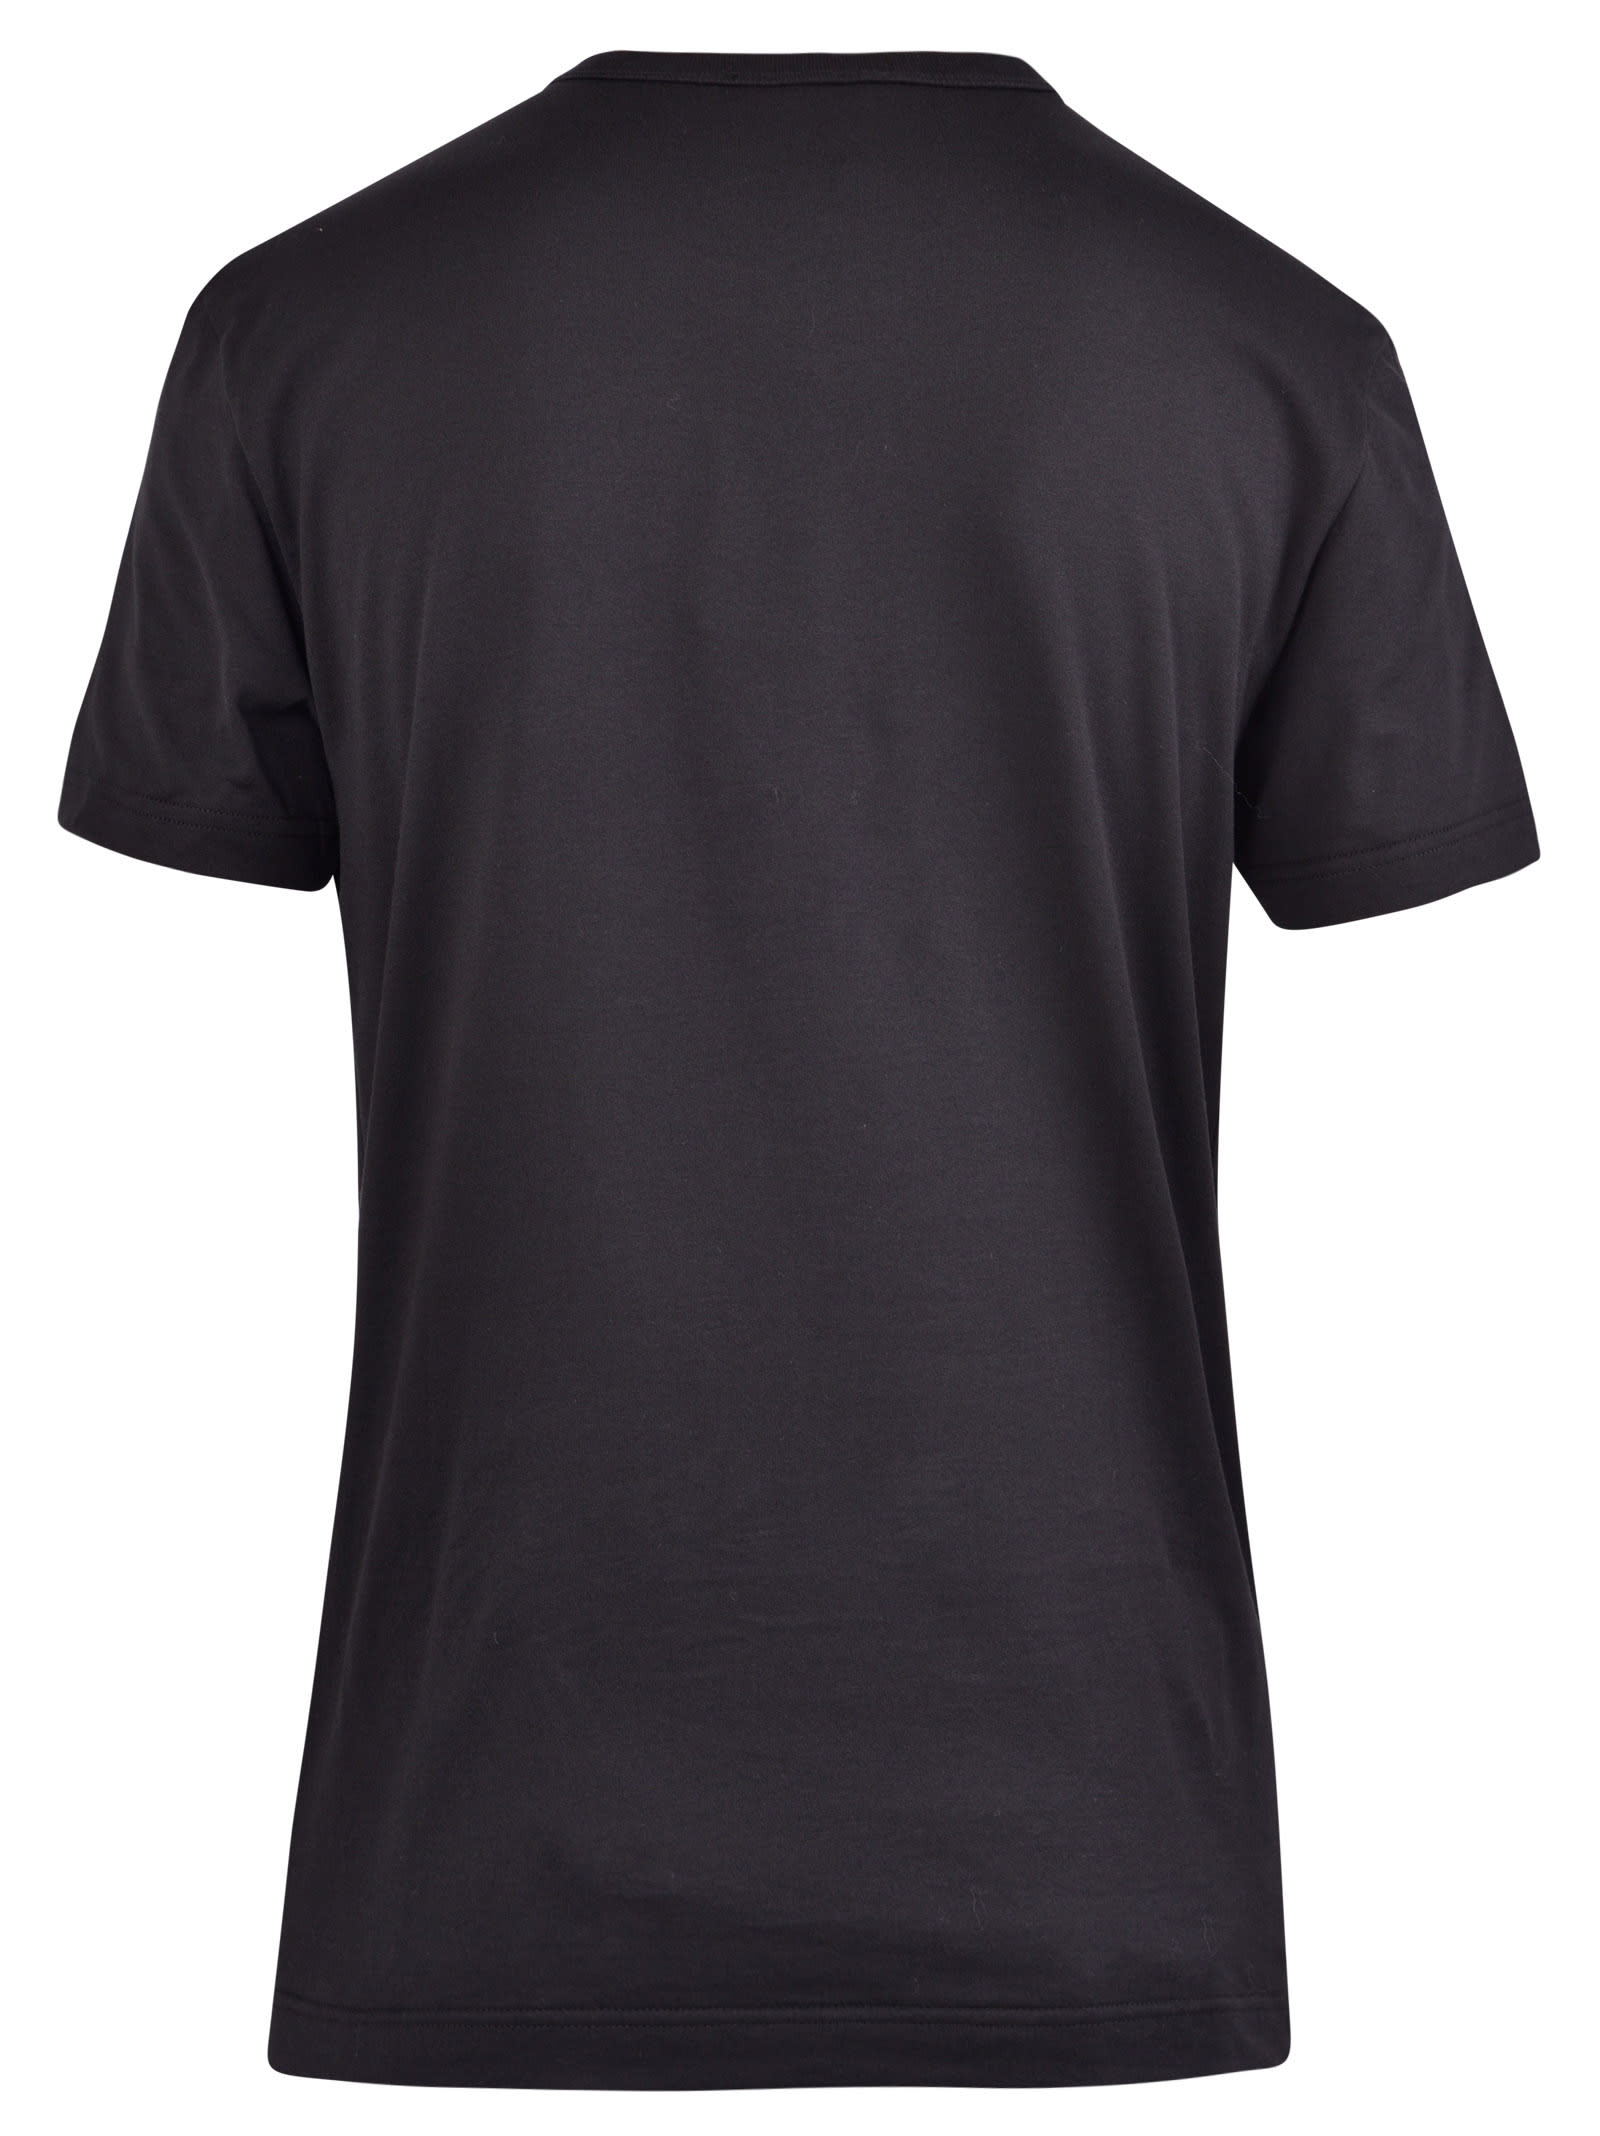 Cheap And Nice Branded T-shirt - Top Quality